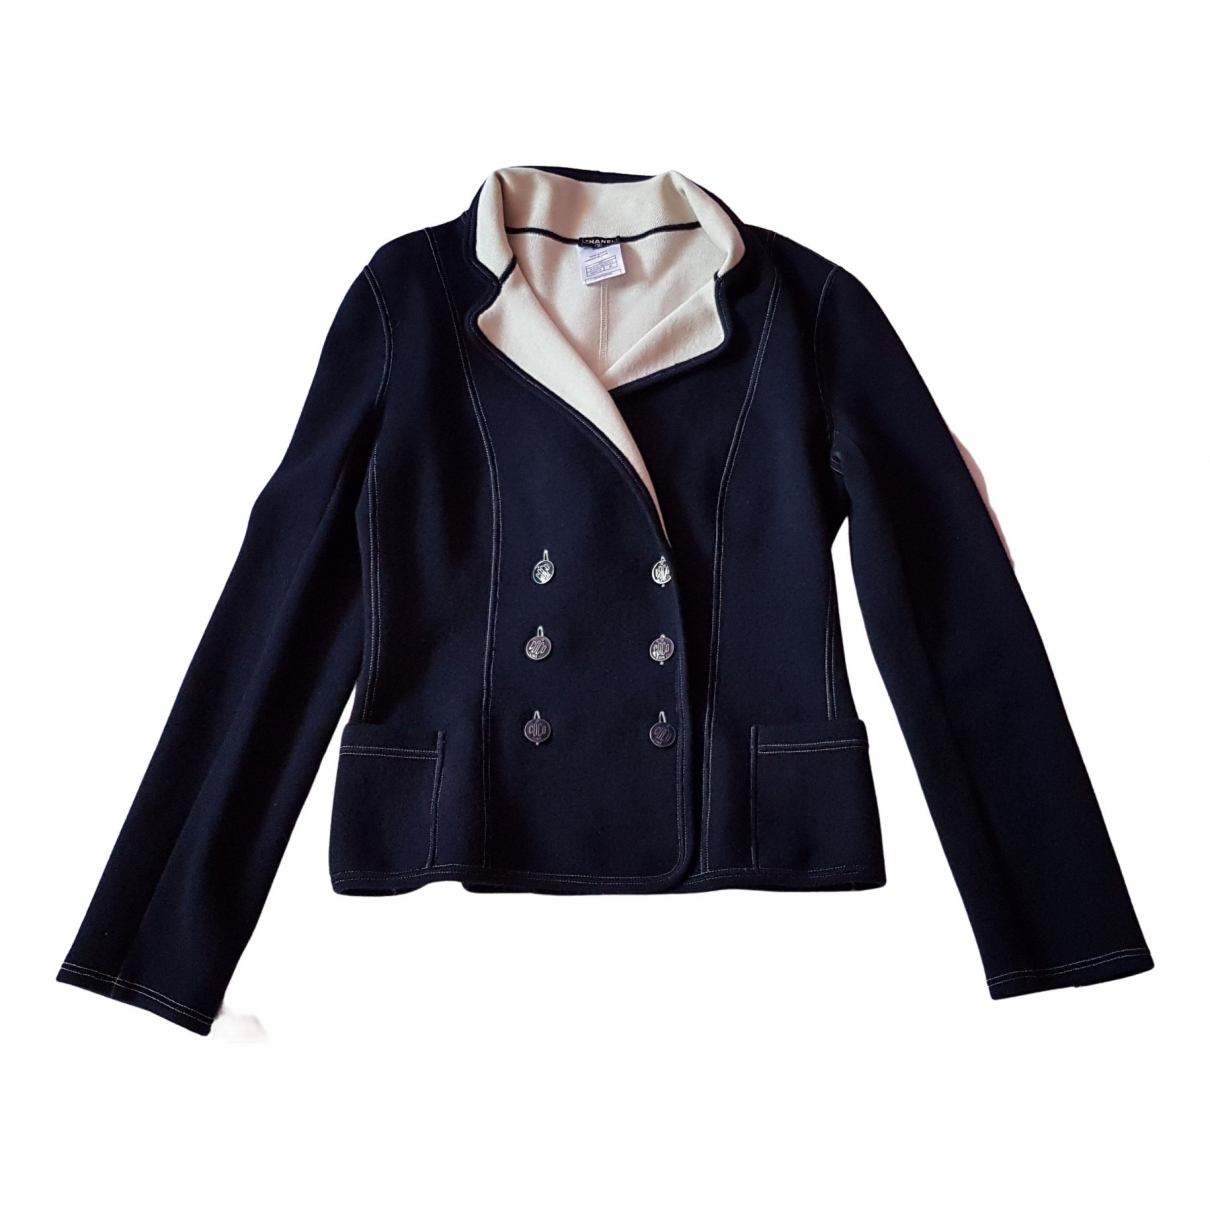 Chanel \N Blue Cotton jacket for Women 40 FR